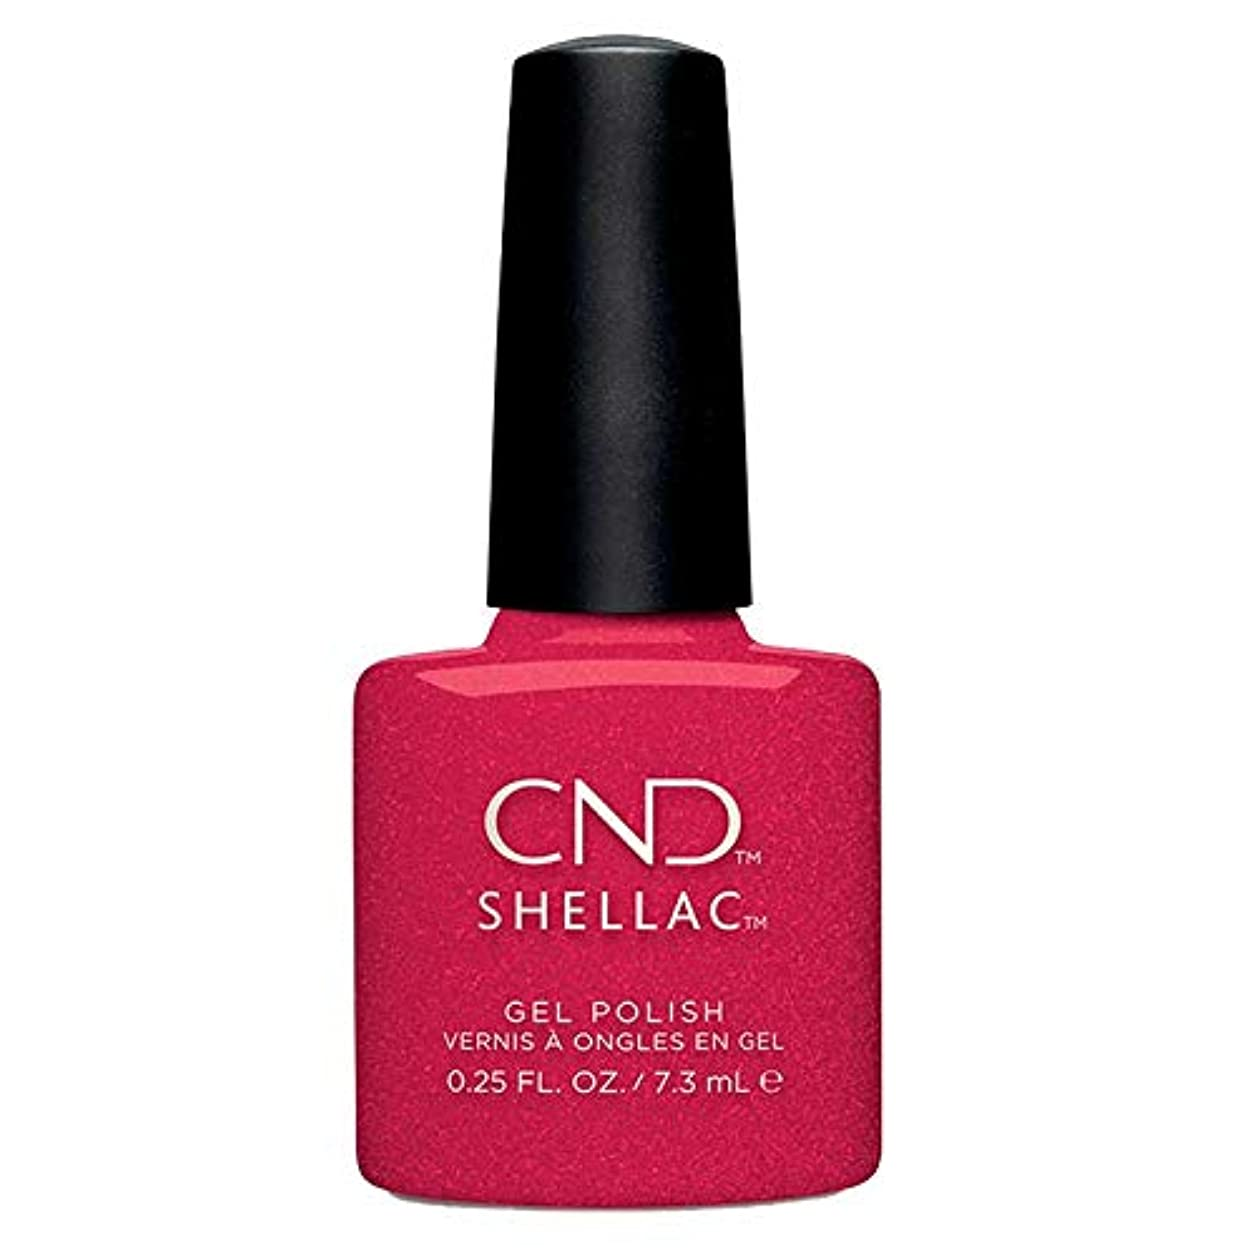 CND Shellac - Night Moves Collection - Kiss of Fire - 0.25 oz / 7.3 oz